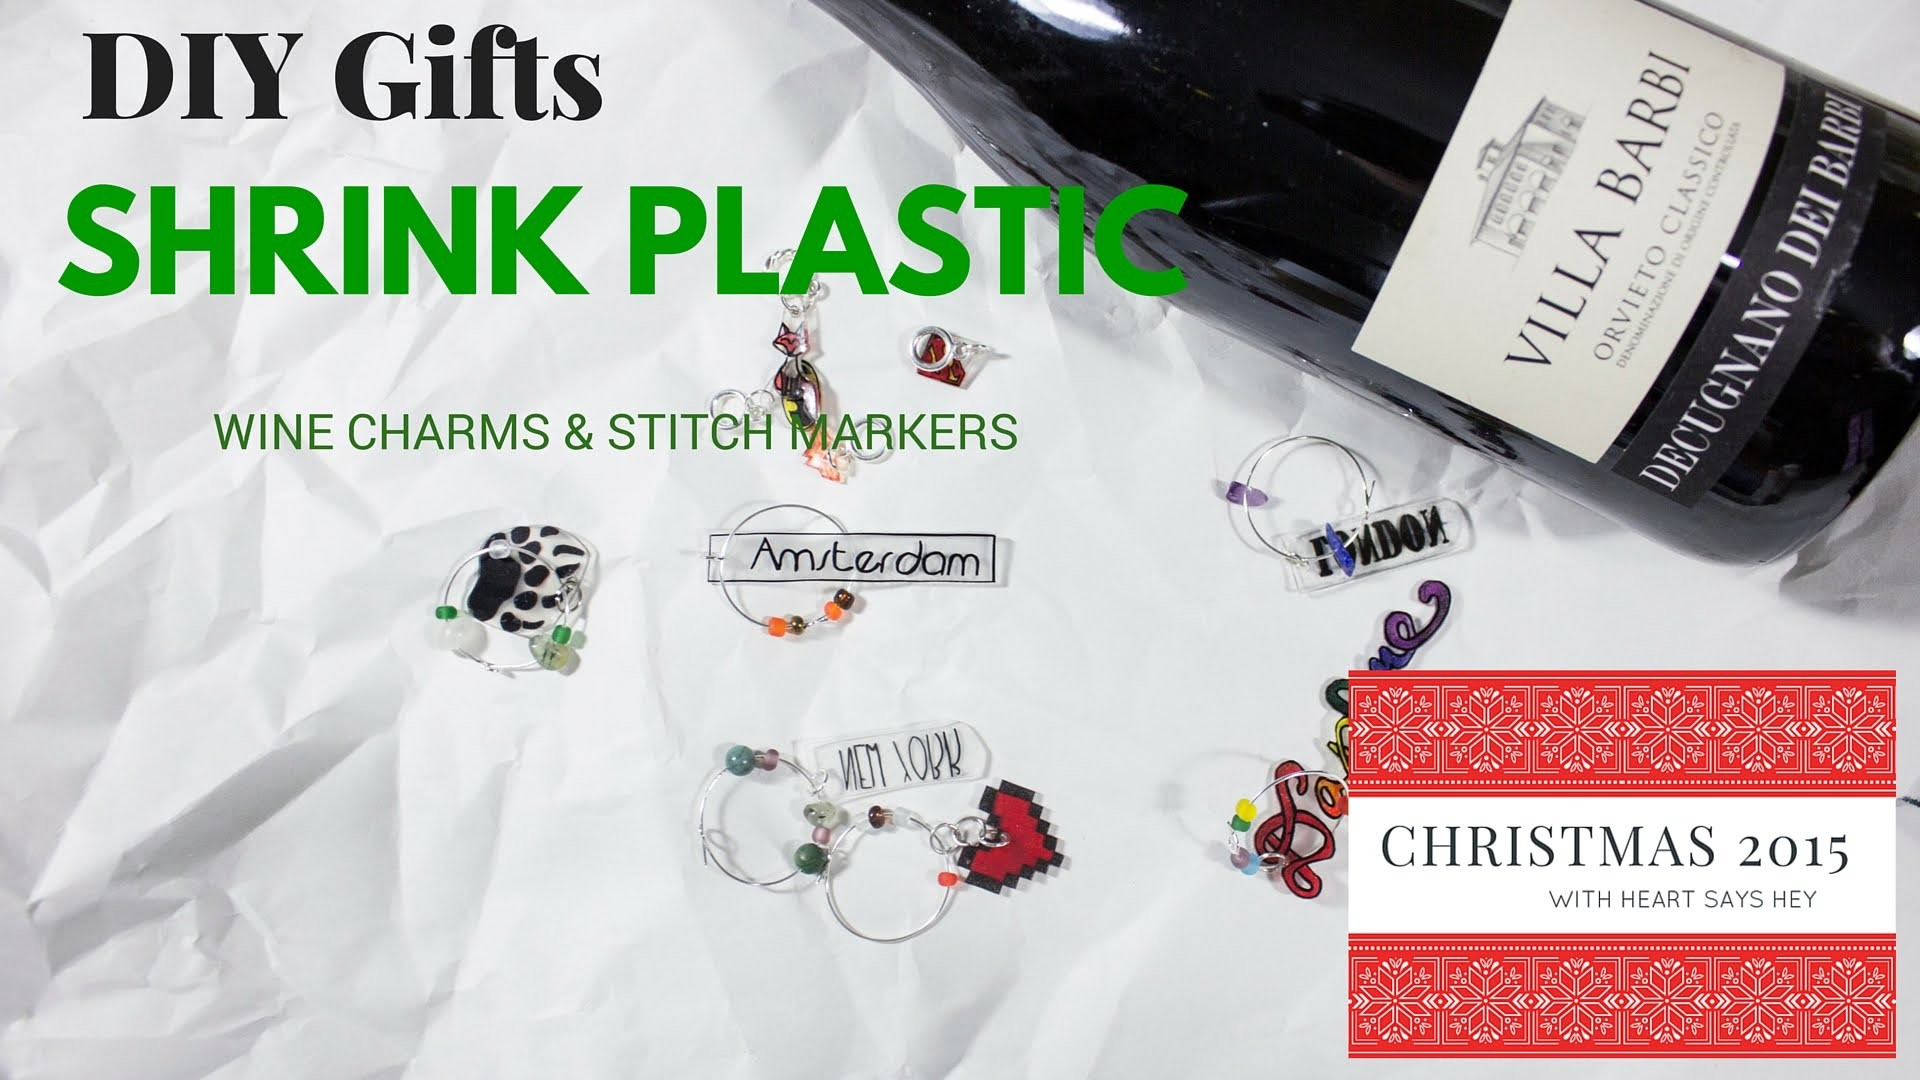 DIY Gifts: Shrink Plastic Wine Charms & Stitch Markers | Homemade for the Holidays